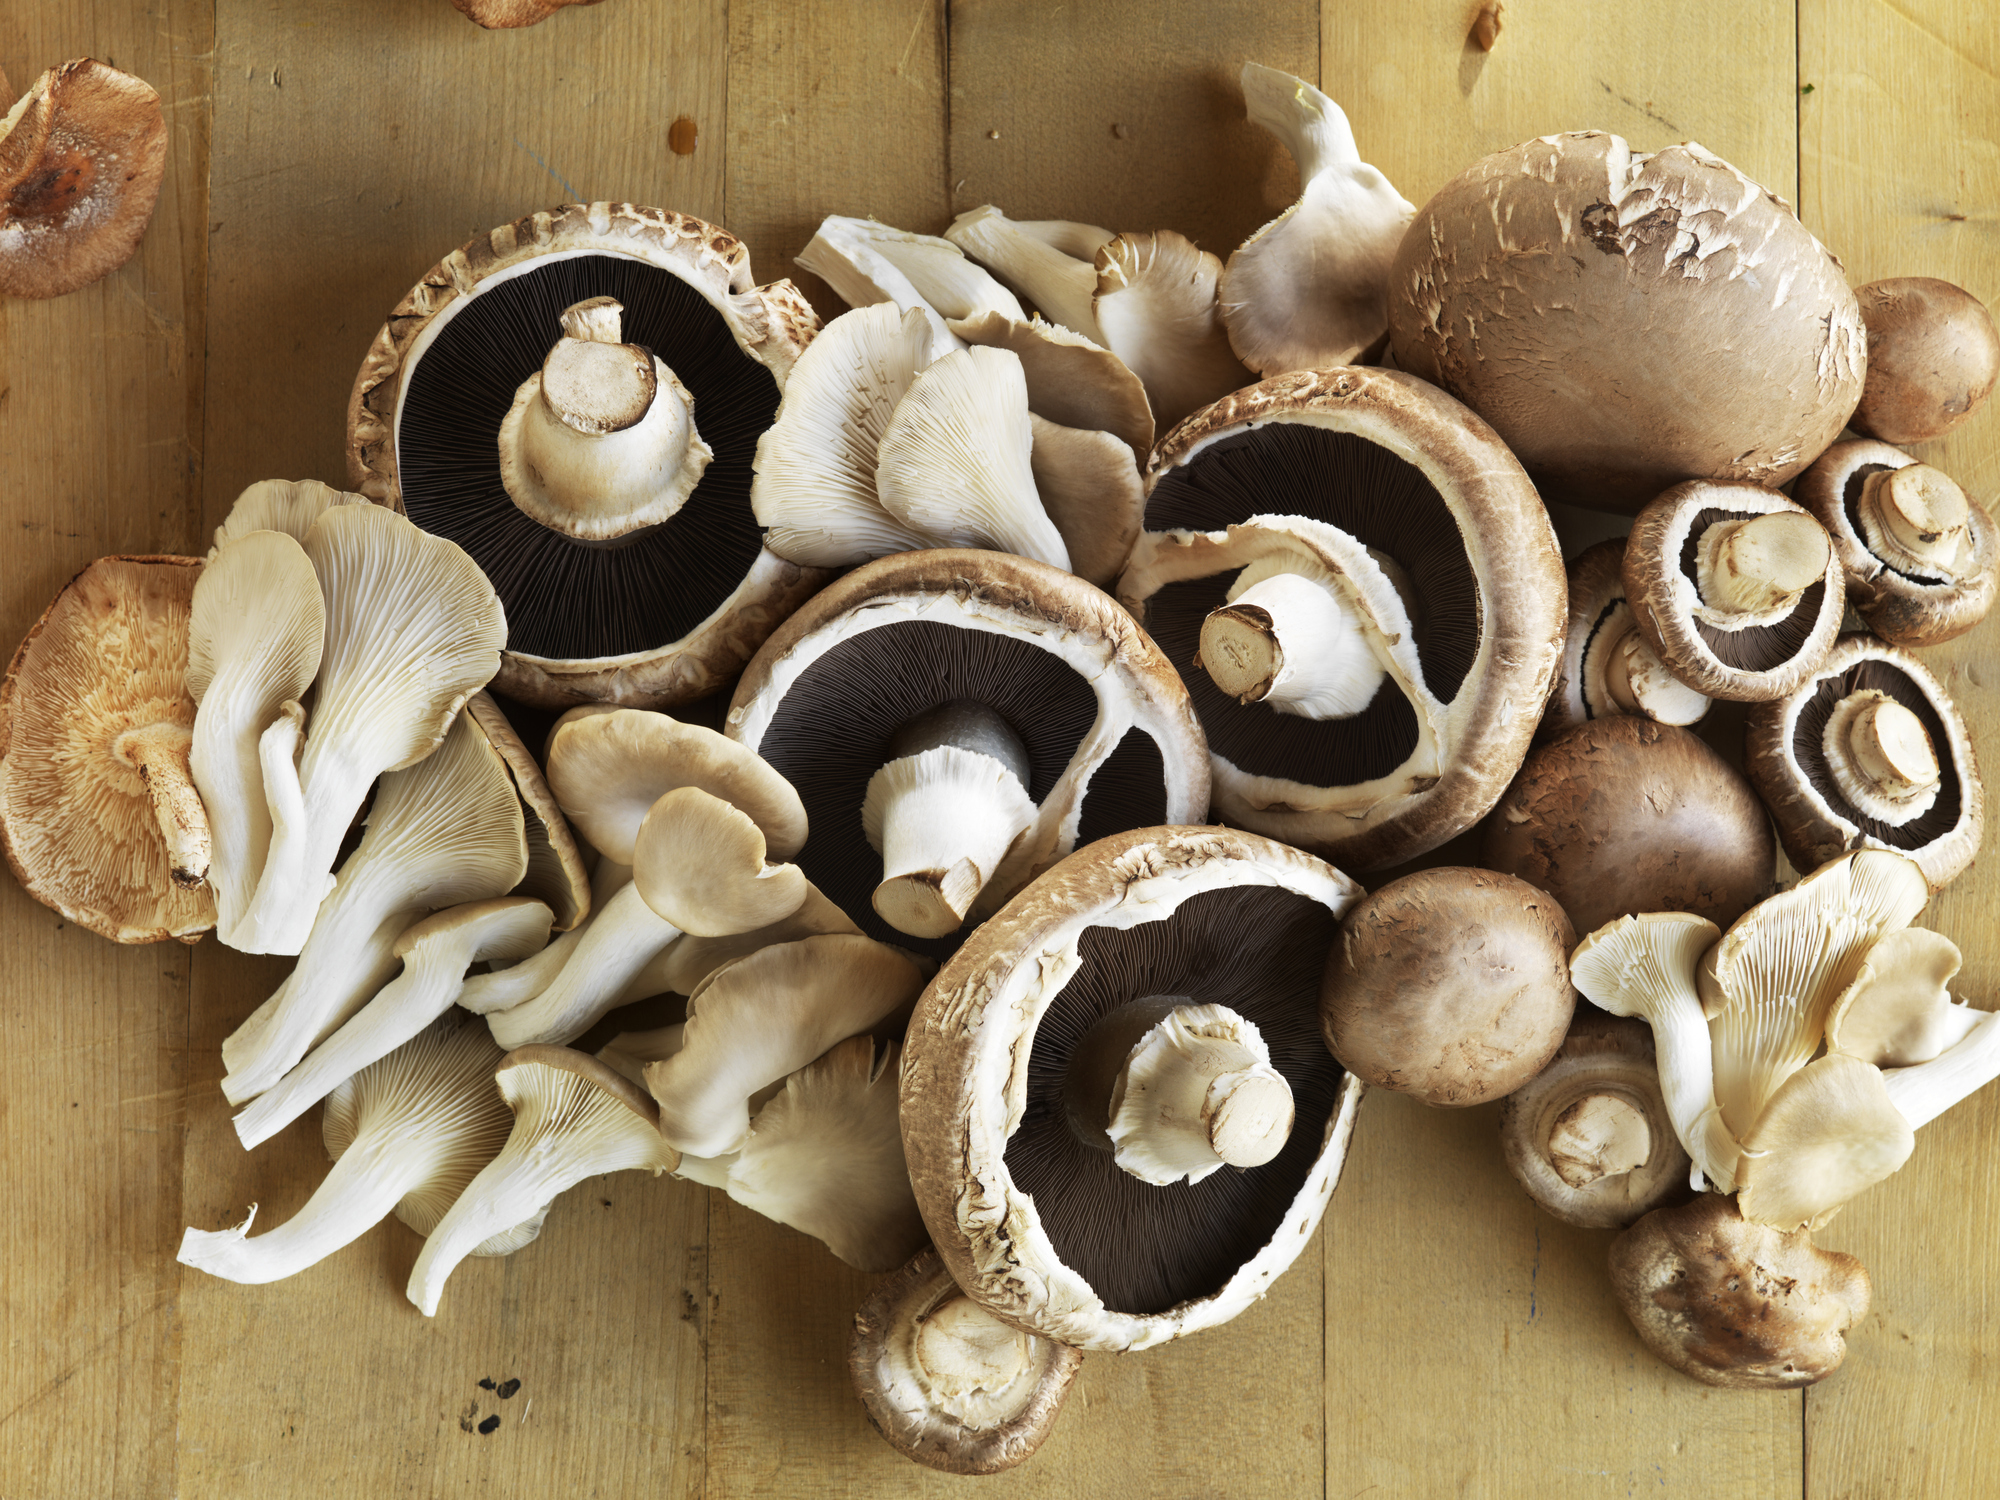 Mushrooms are a wonderful food source. Photo: Getty Images